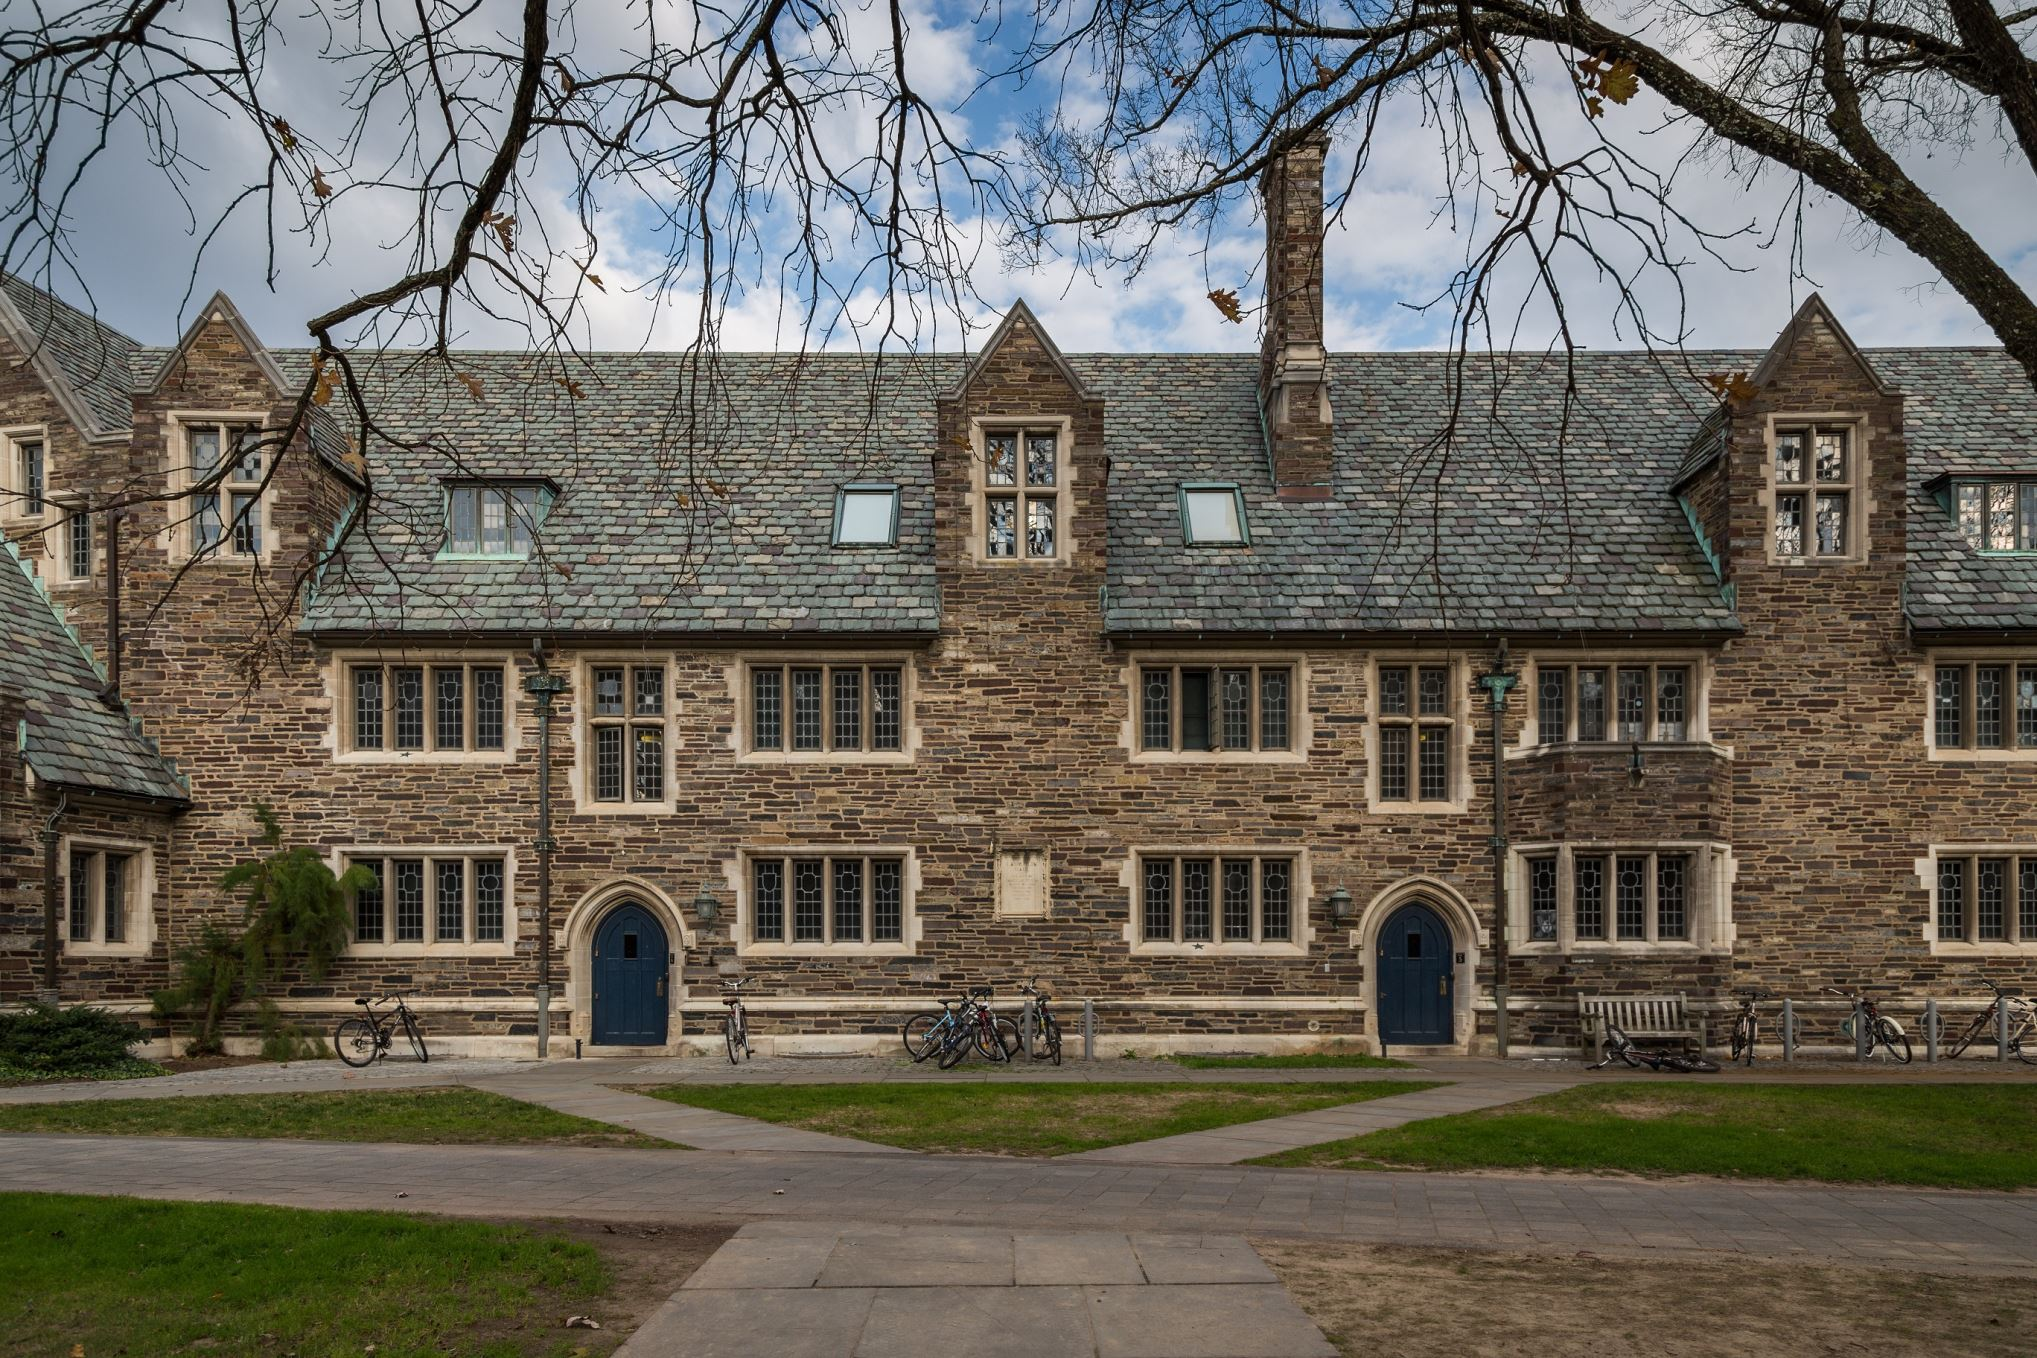 Διαφάνεια 32 από 41: Over the years, Princeton University has produced 14 billionaires. The university, which was founded in 1746, was originally named Elizabeth College of New Jersey. 150 years later, it was renamed to its current name. 14 of its graduates are billionaires currently.